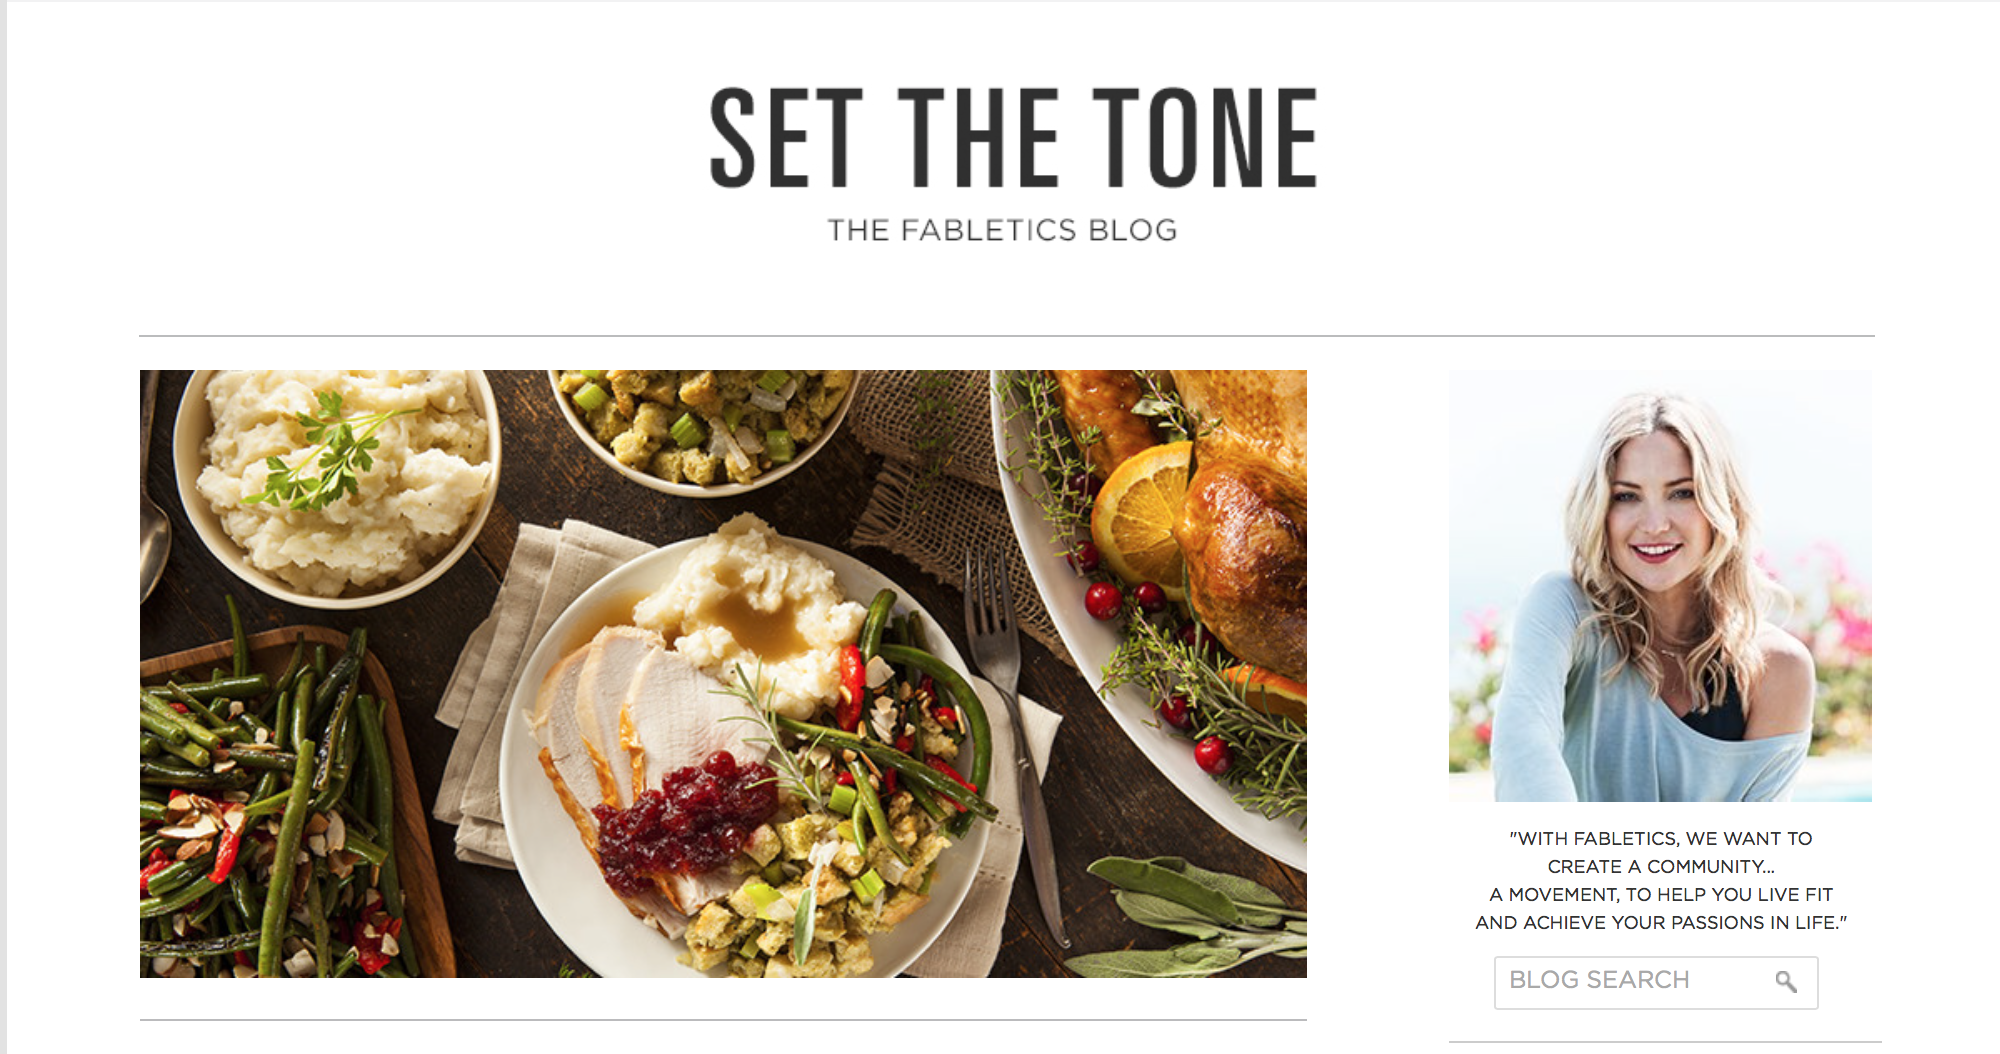 blog.fabletics.com:2014:11:give-thanks-simple-holiday-food-swaps:.png